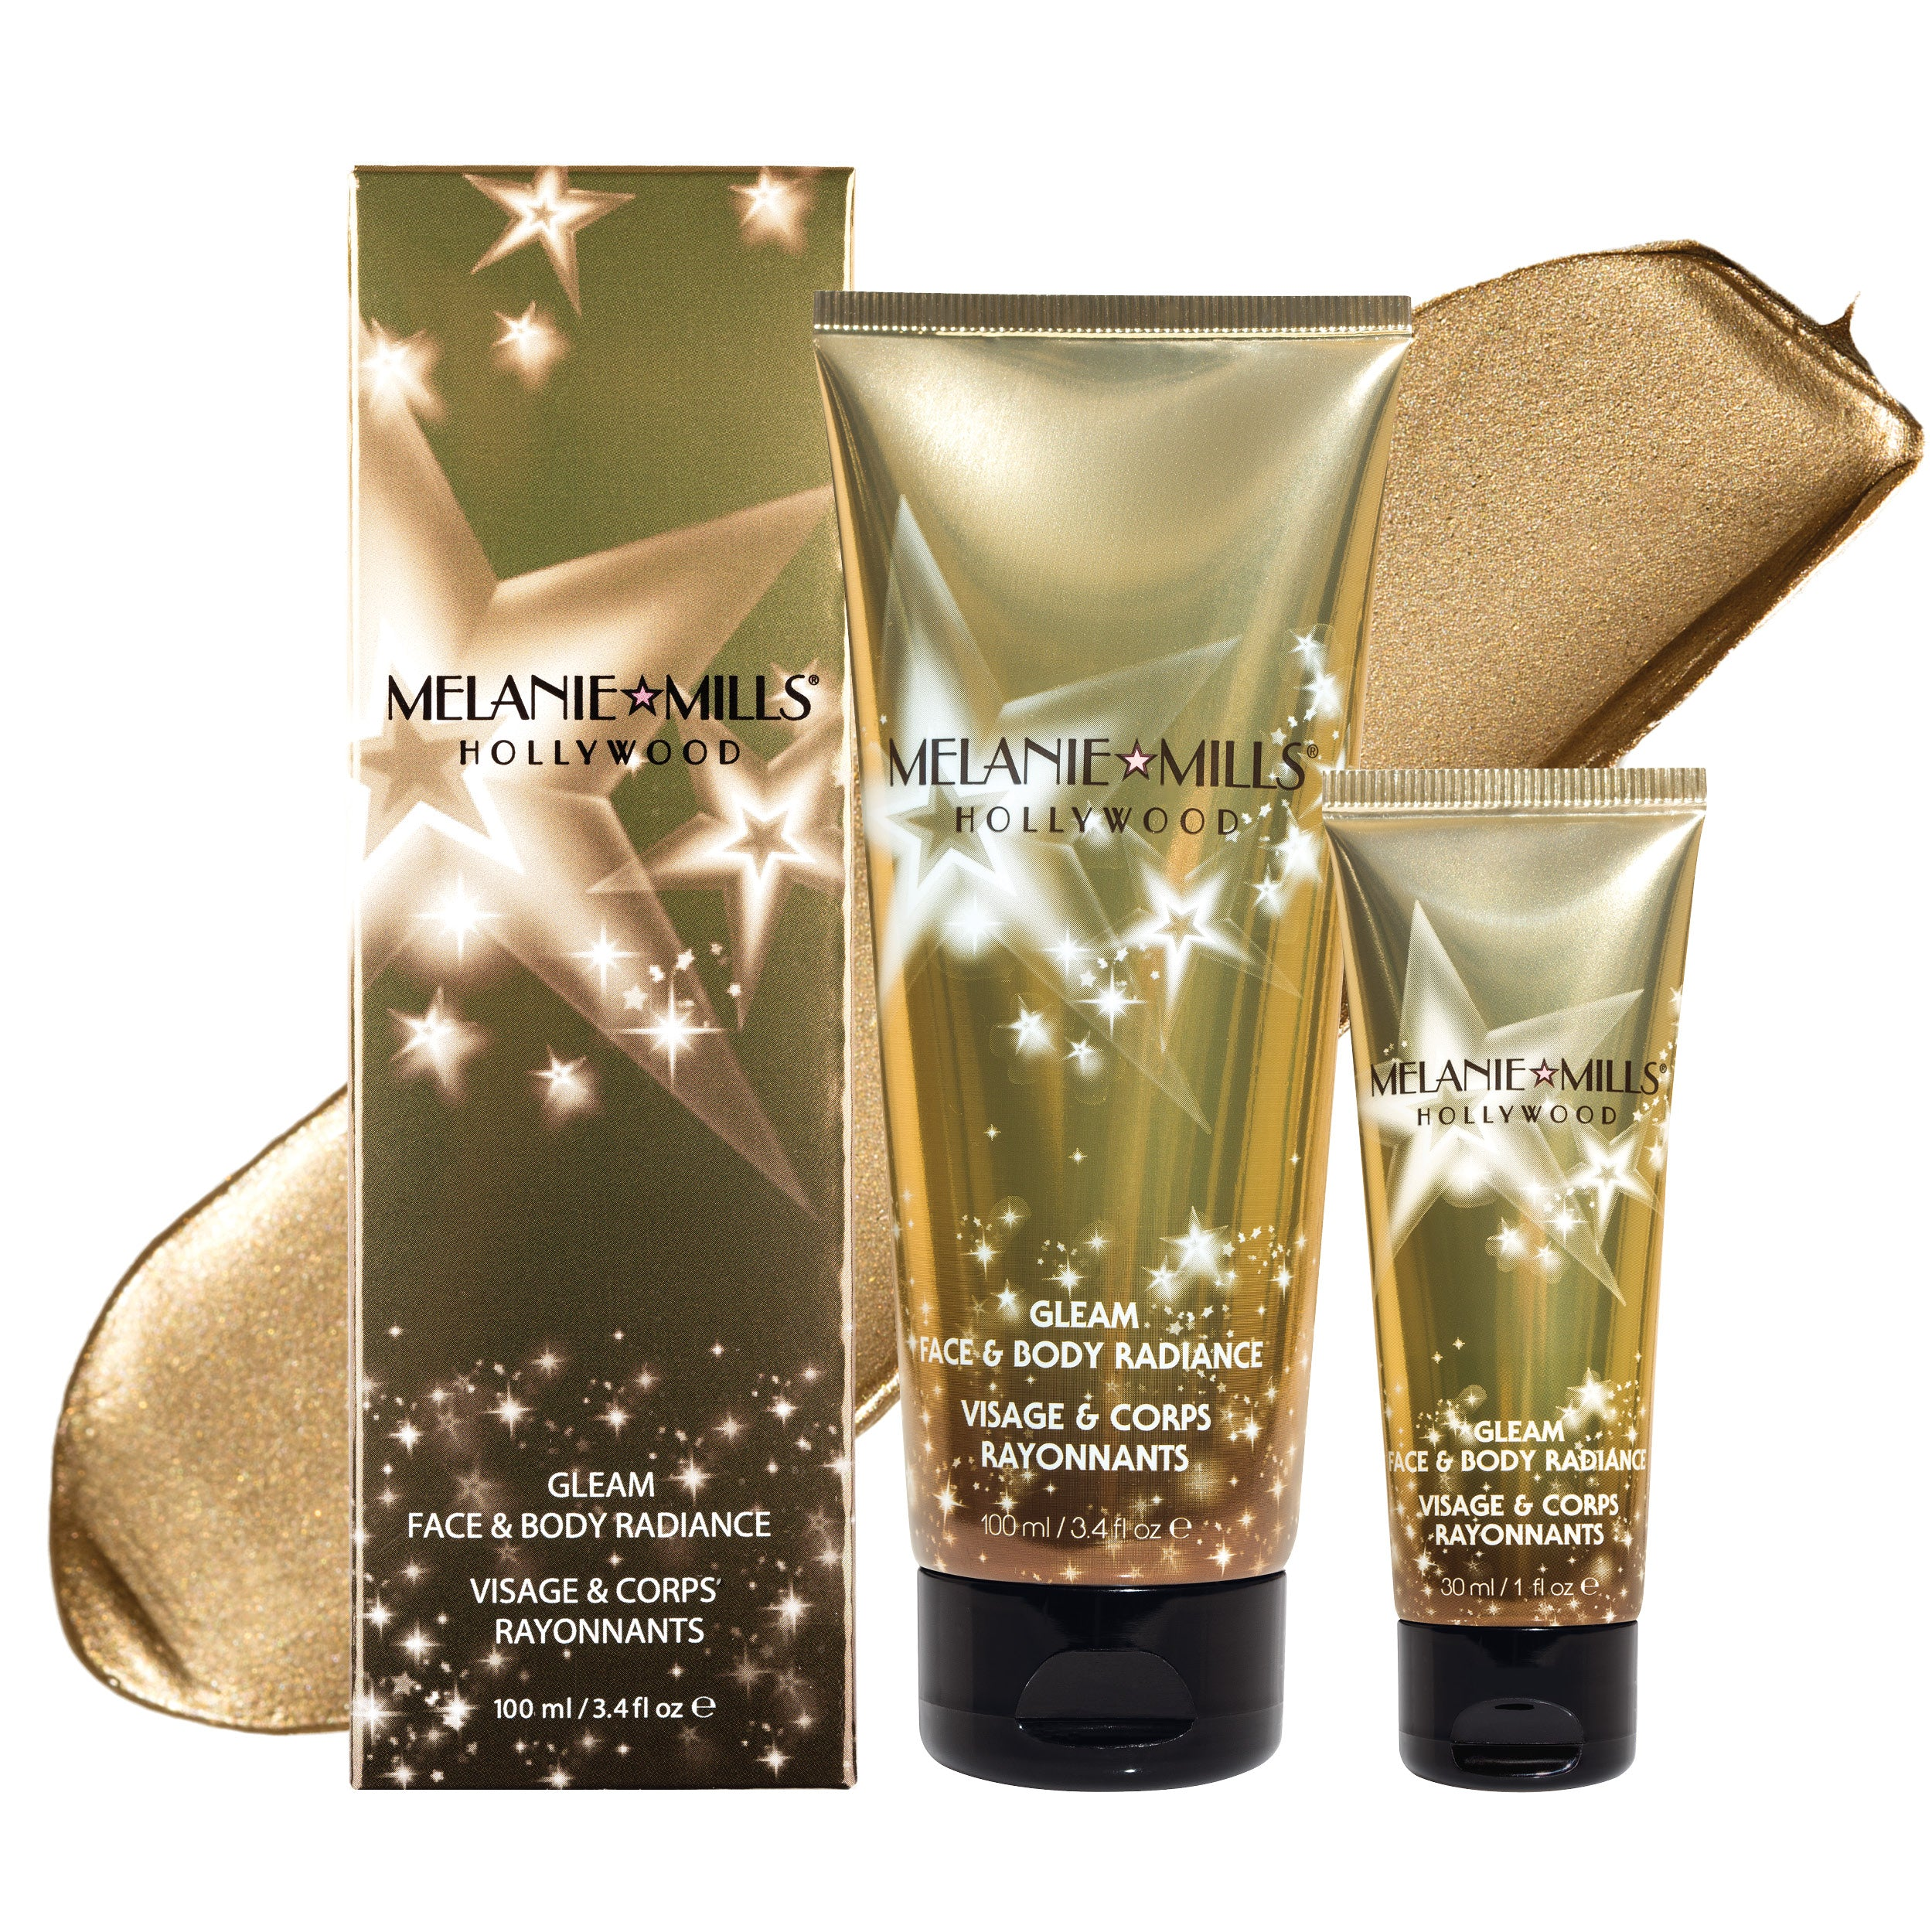 DISCO GOLD Gleam Face & Body Radiance All In One Makeup, Moisturizer & Glow